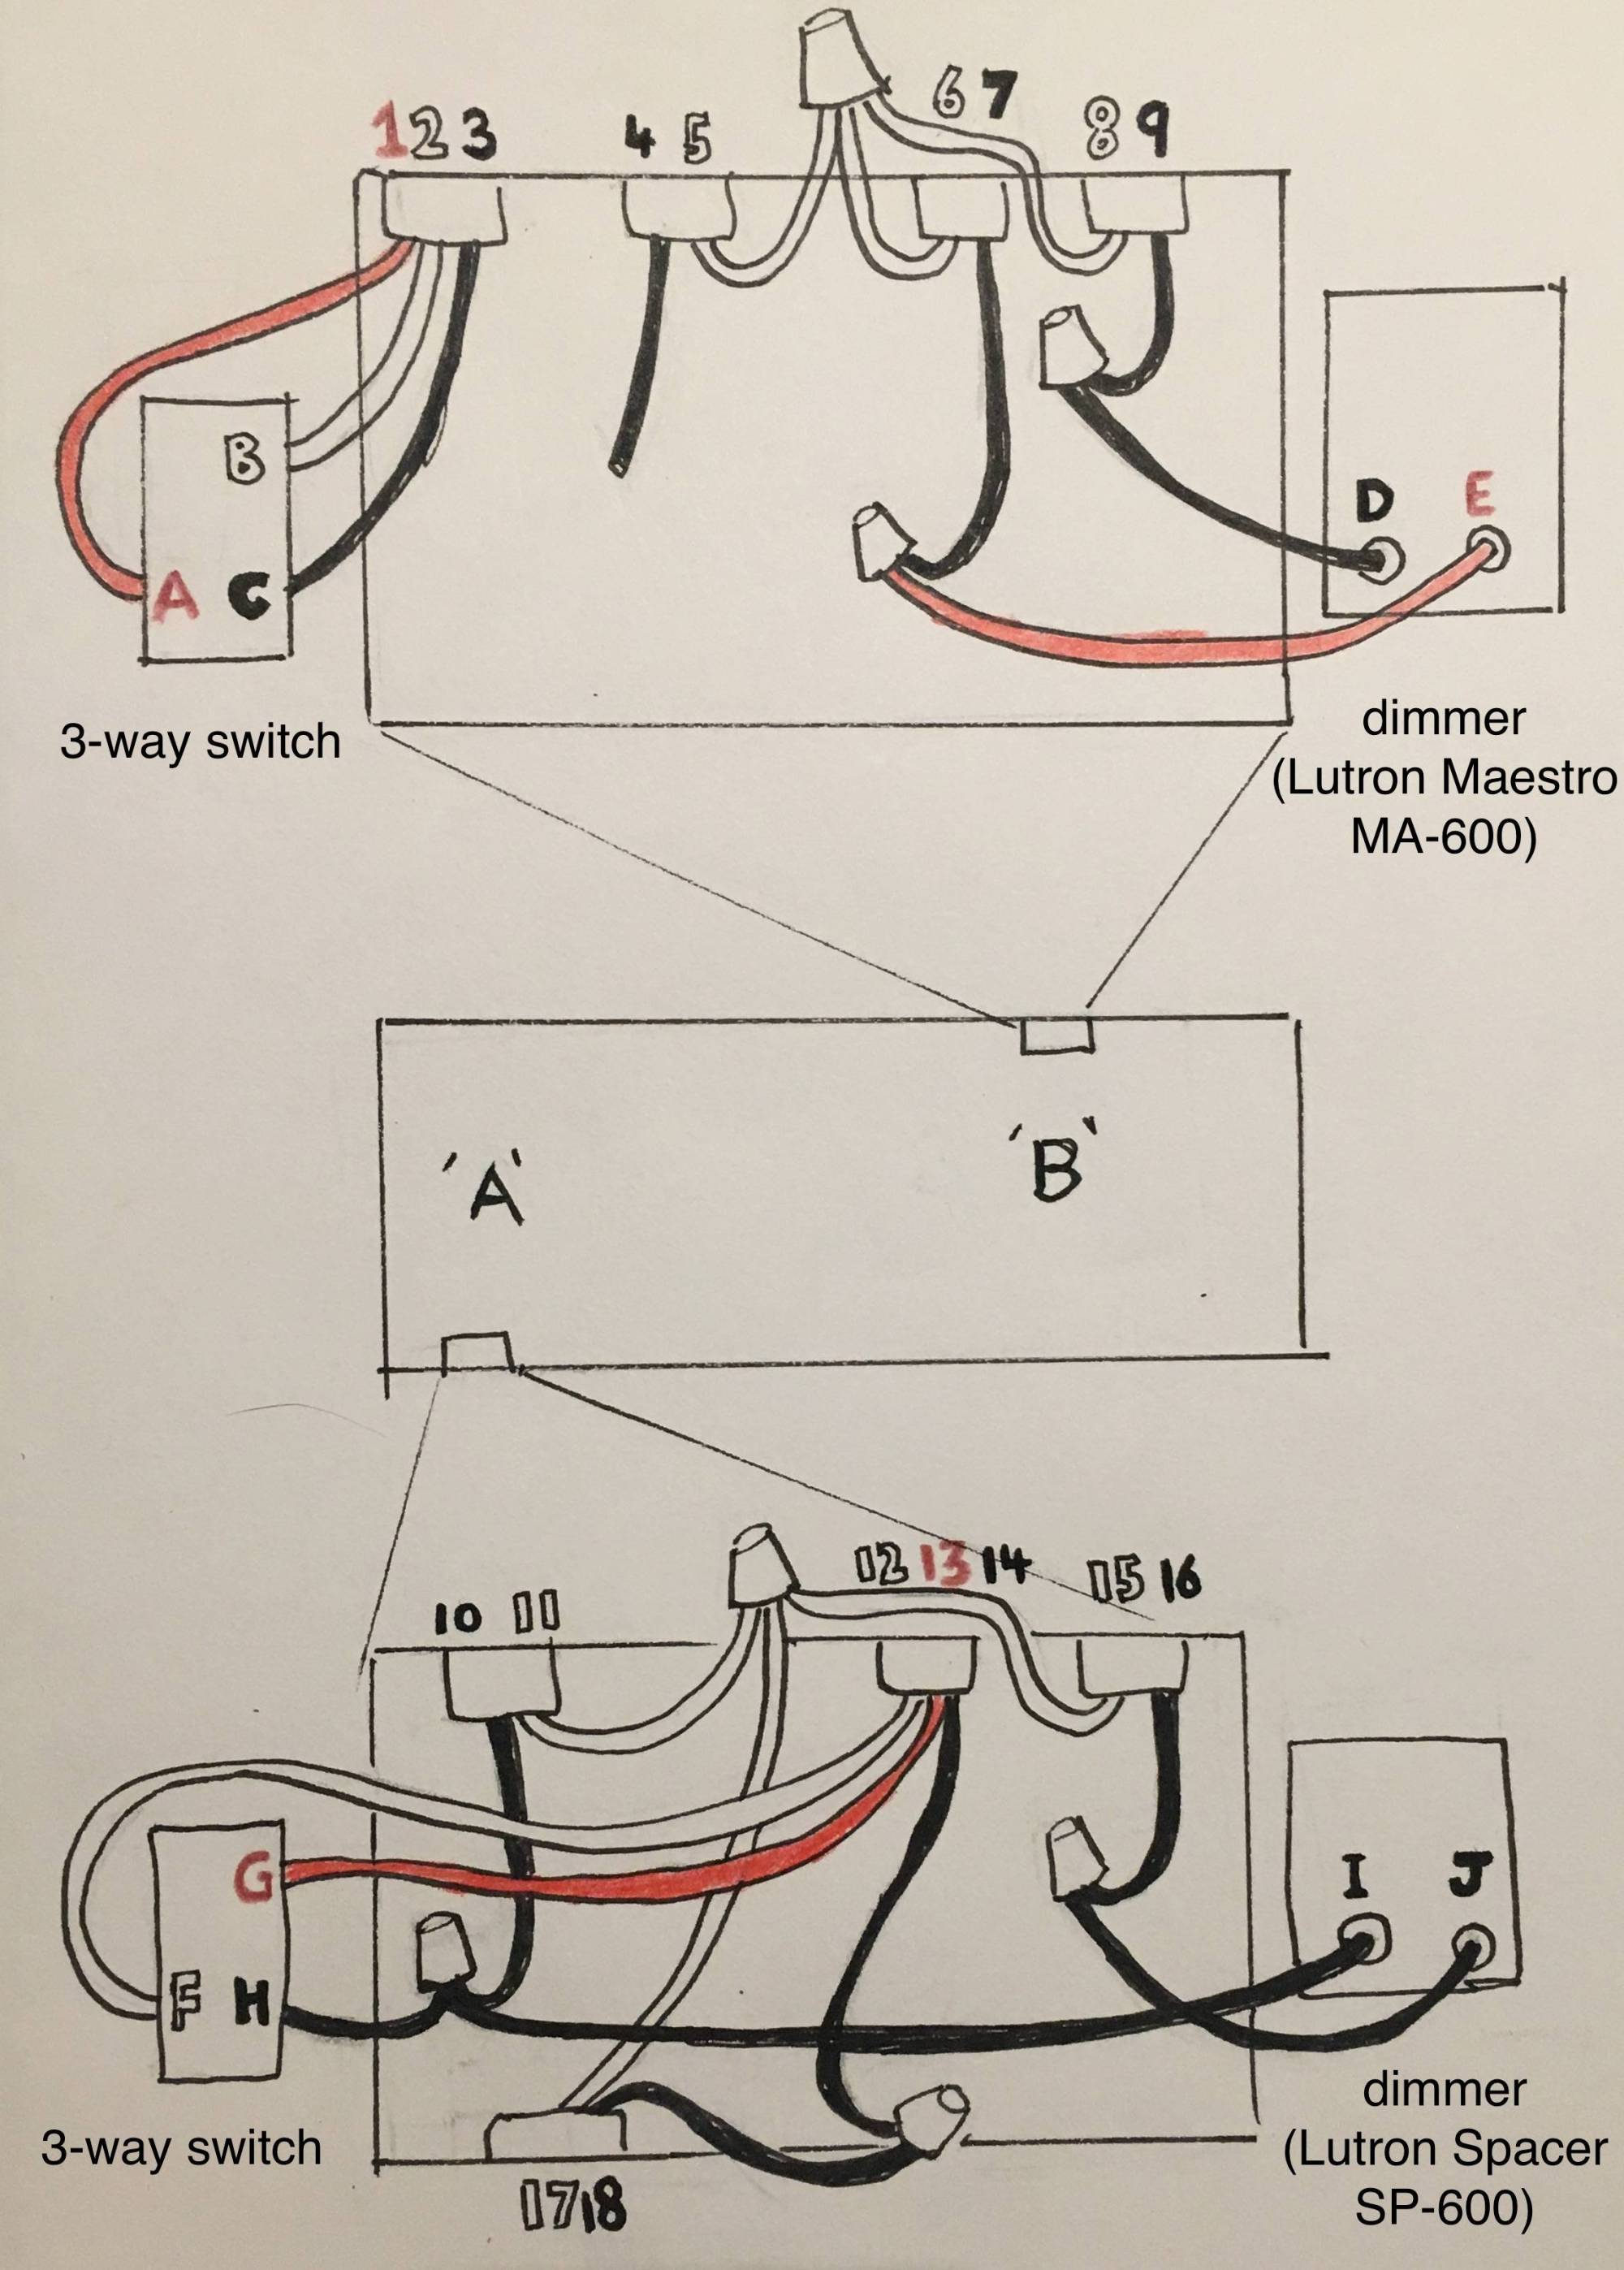 hight resolution of help with wiring new dimmer switches home improvement stack exchange rh diy stackexchange com lutron light switch wiring diagram lutron single pole dimmer